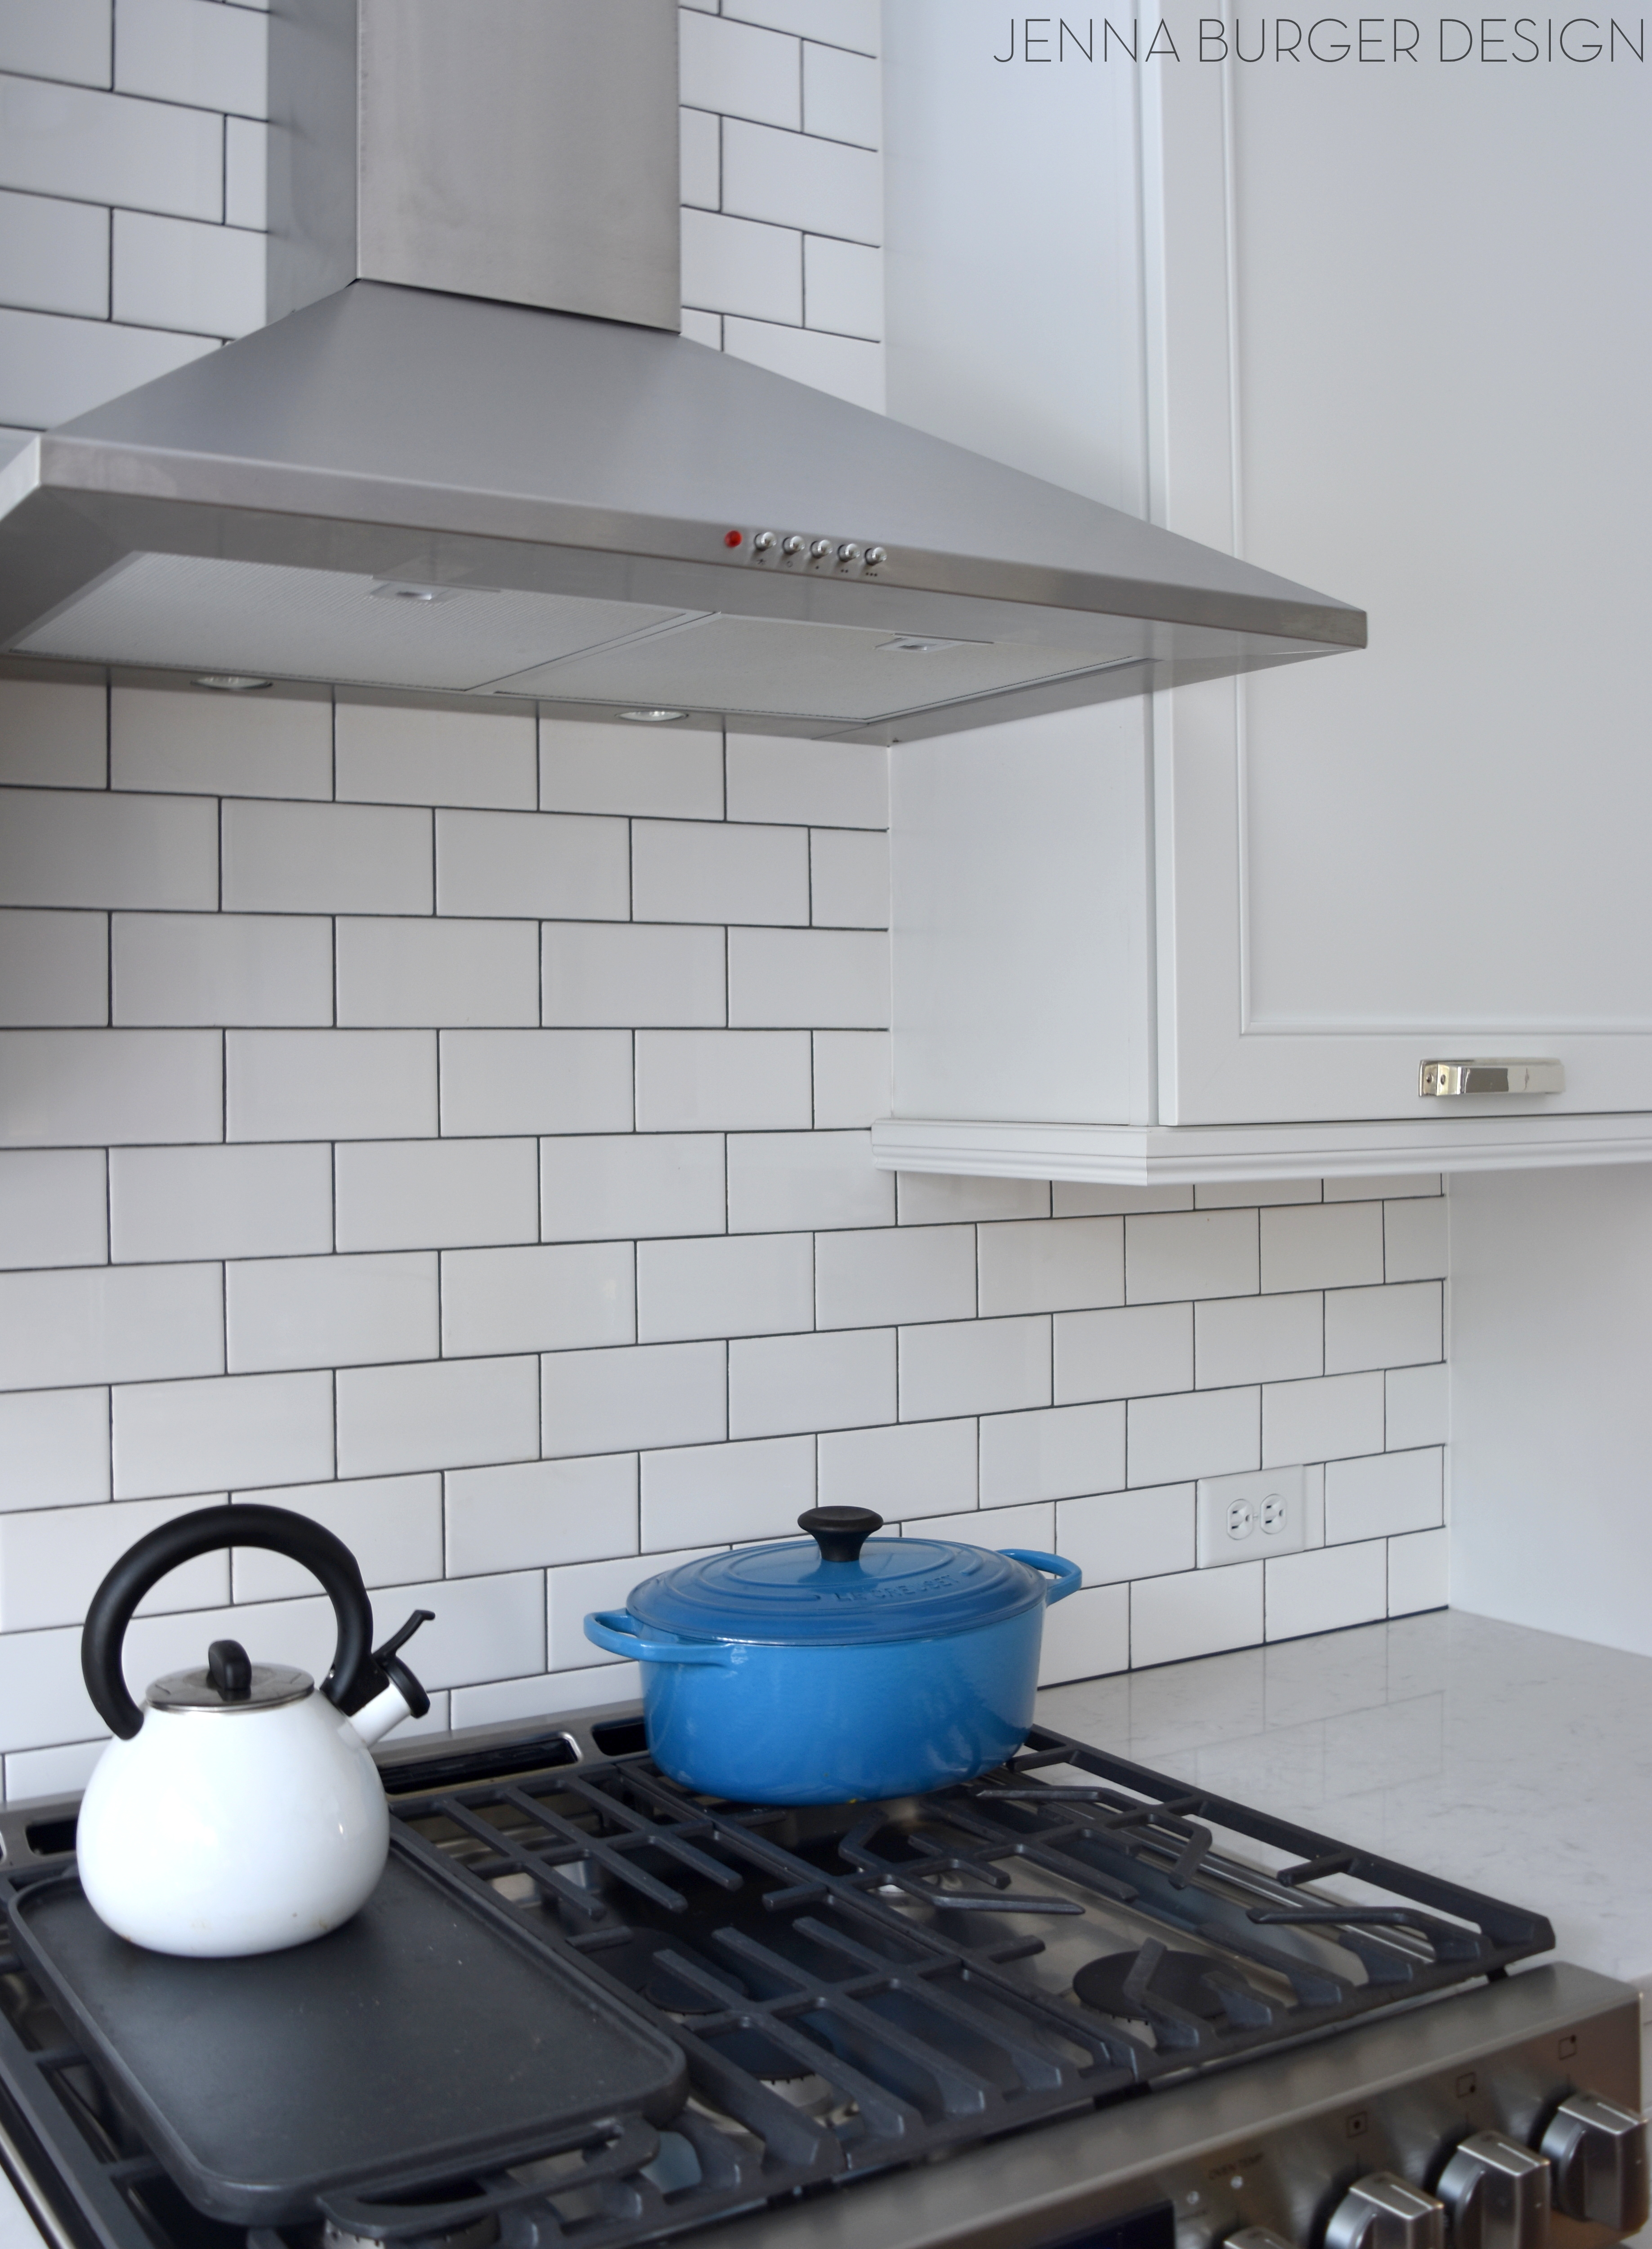 subway tile kitchen backsplash installation backsplash kitchen Subway Tile There are many styles colors How do you choose the right